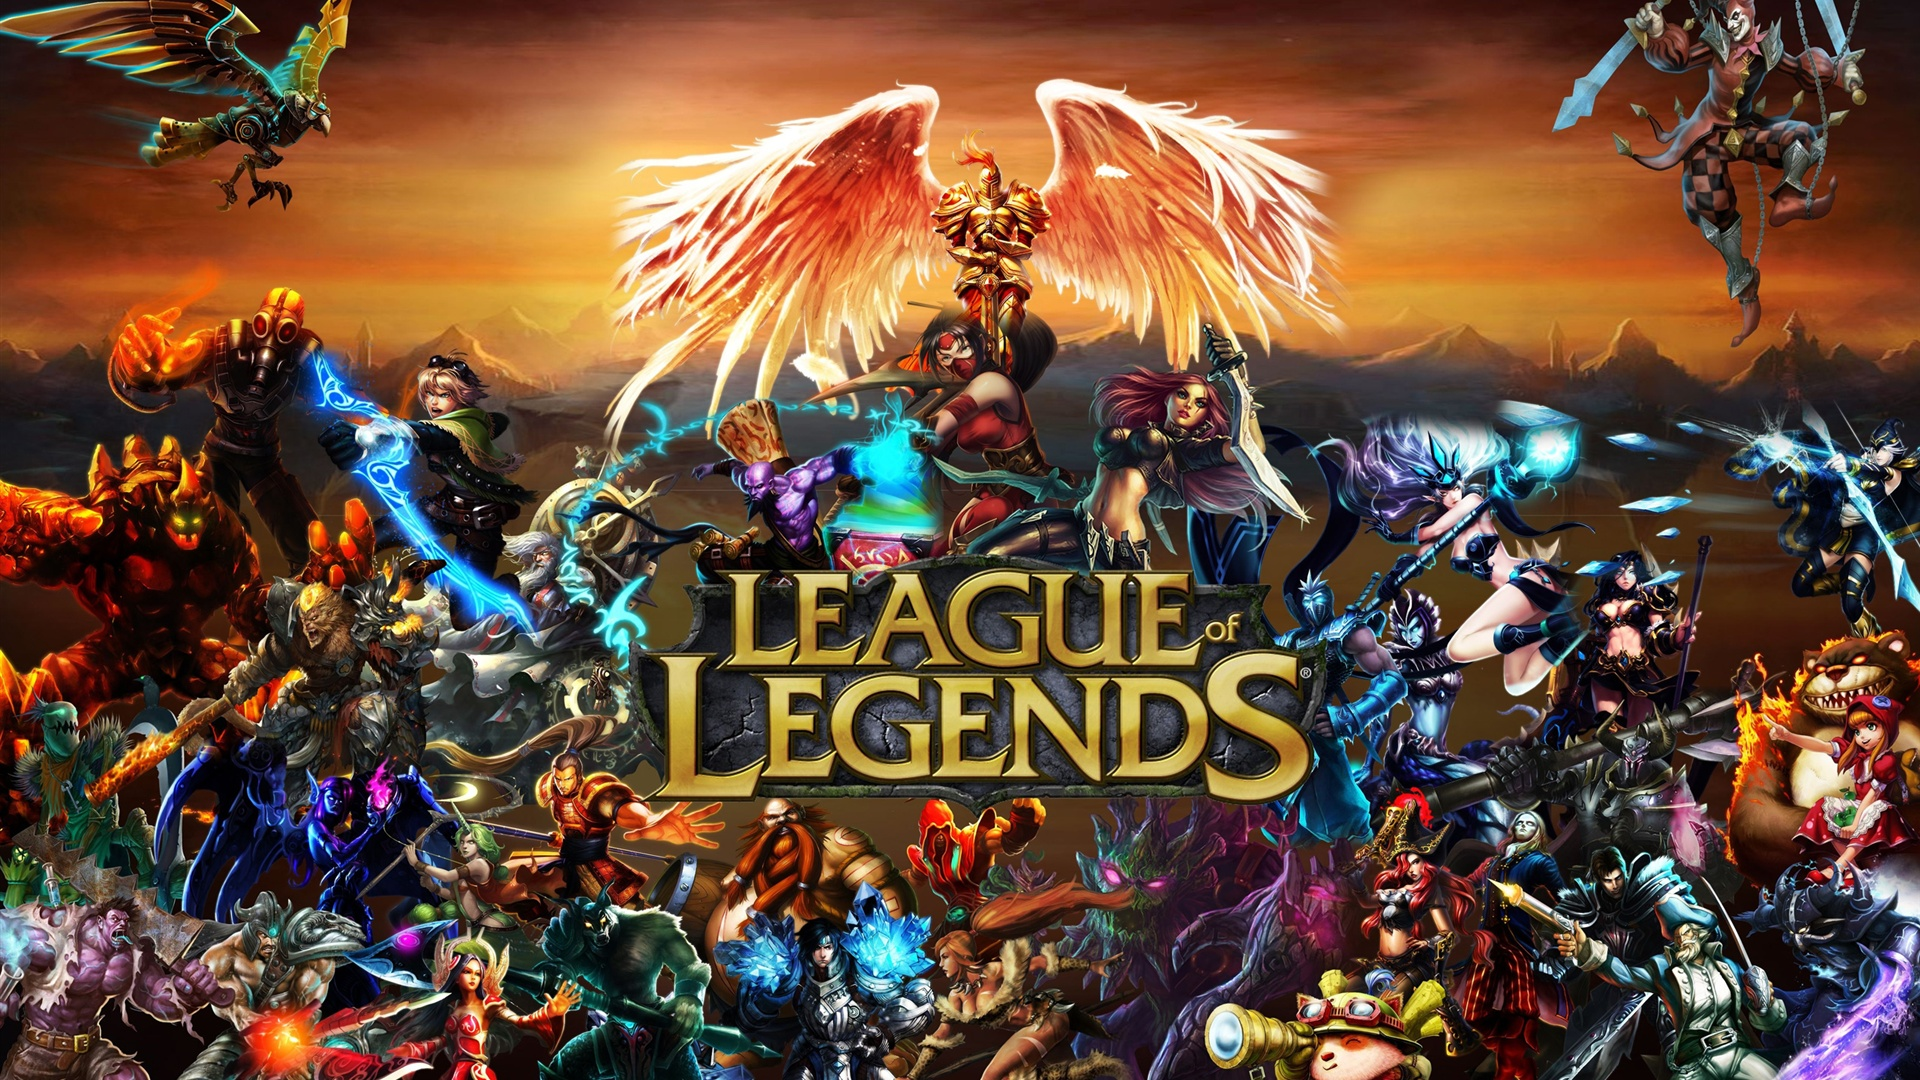 League of Legends wallpaper 61